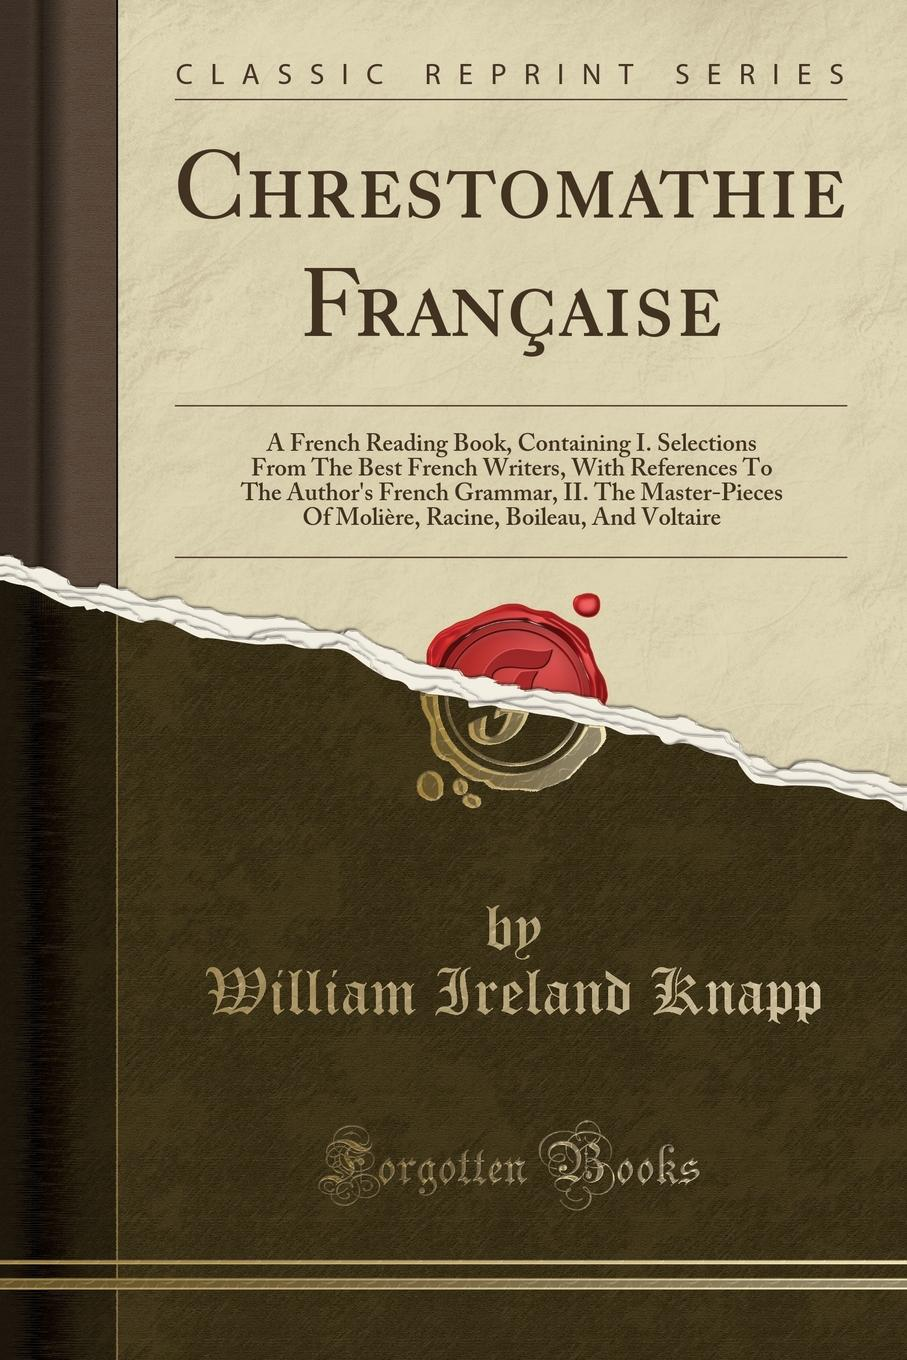 William Ireland Knapp Chrestomathie Francaise. A French Reading Book, Containing I. Selections From The Best French Writers, With References To The Author.s French Grammar, II. The Master-Pieces Of Moliere, Racine, Boileau, And Voltaire (Classic Reprint) french in one click book with cd